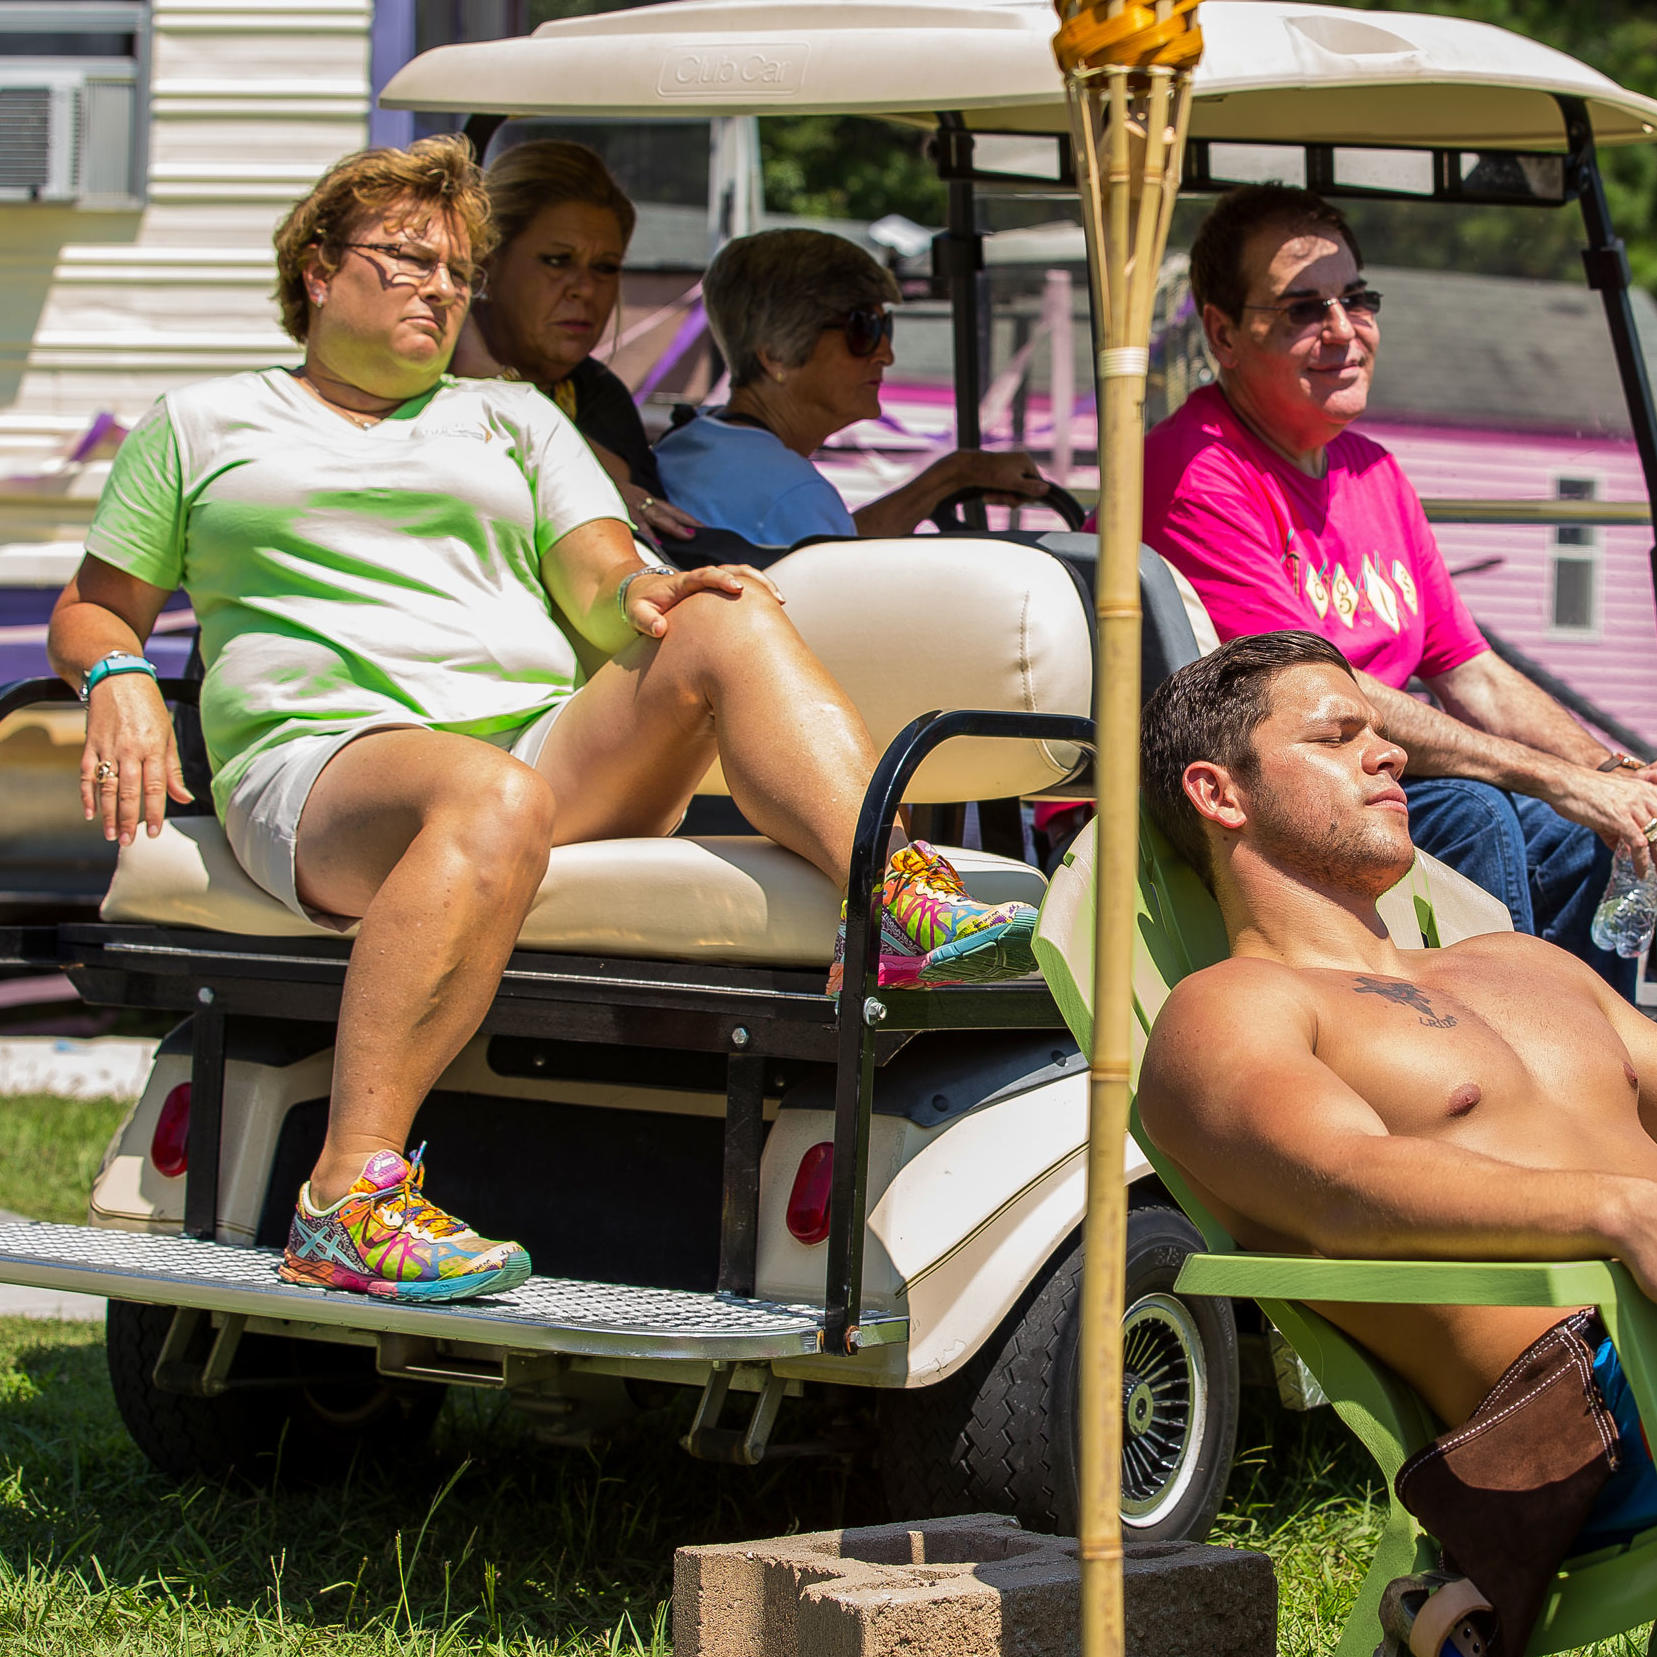 Meet The Residents of Myrtle Manor